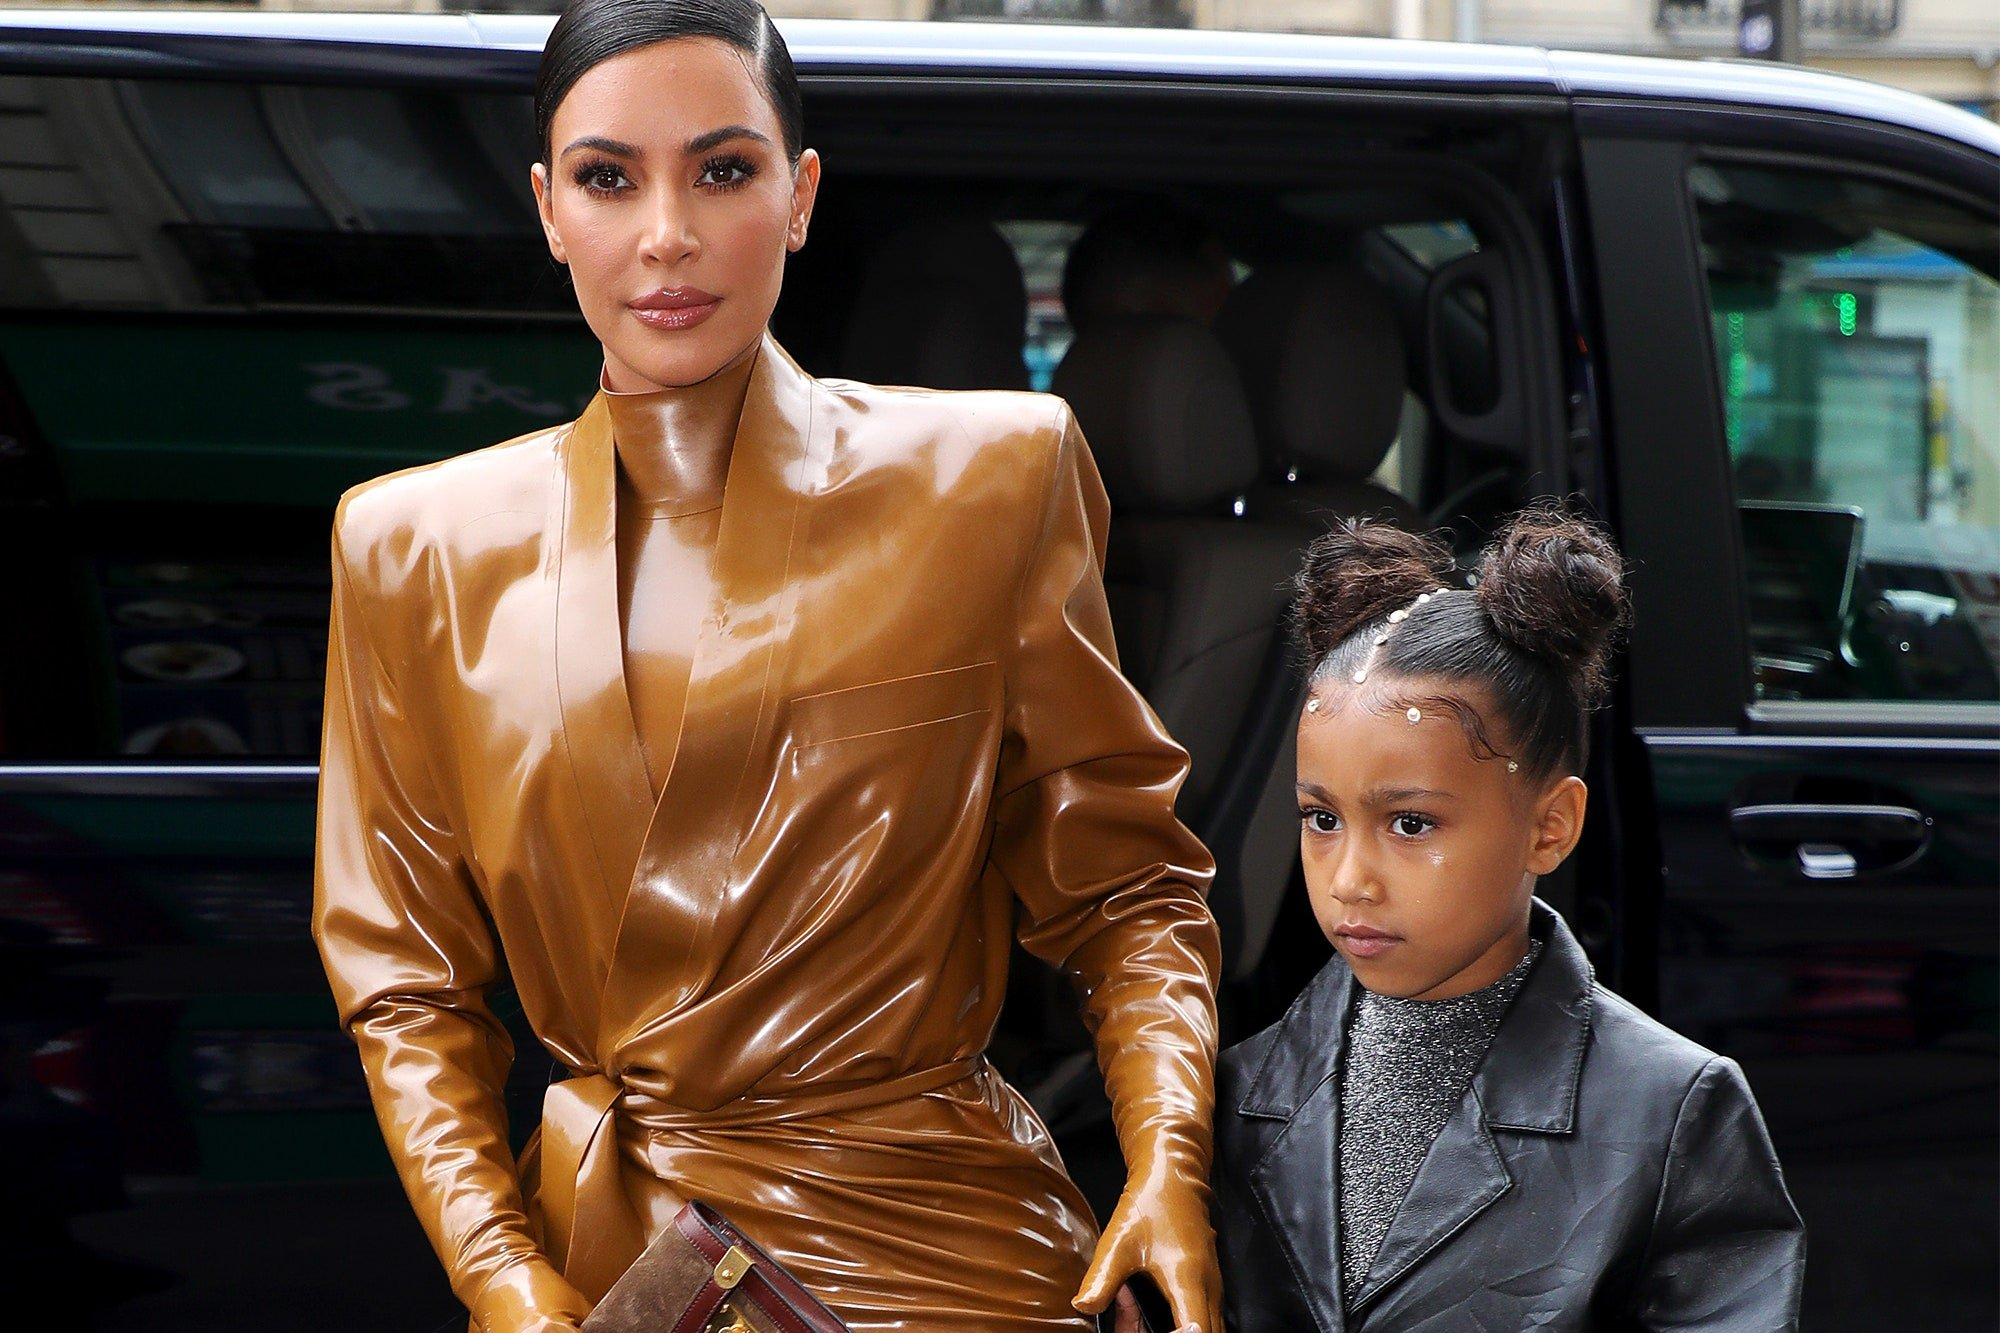 Kim Kardashian's Daughter North West Is Growing Up Beautifully